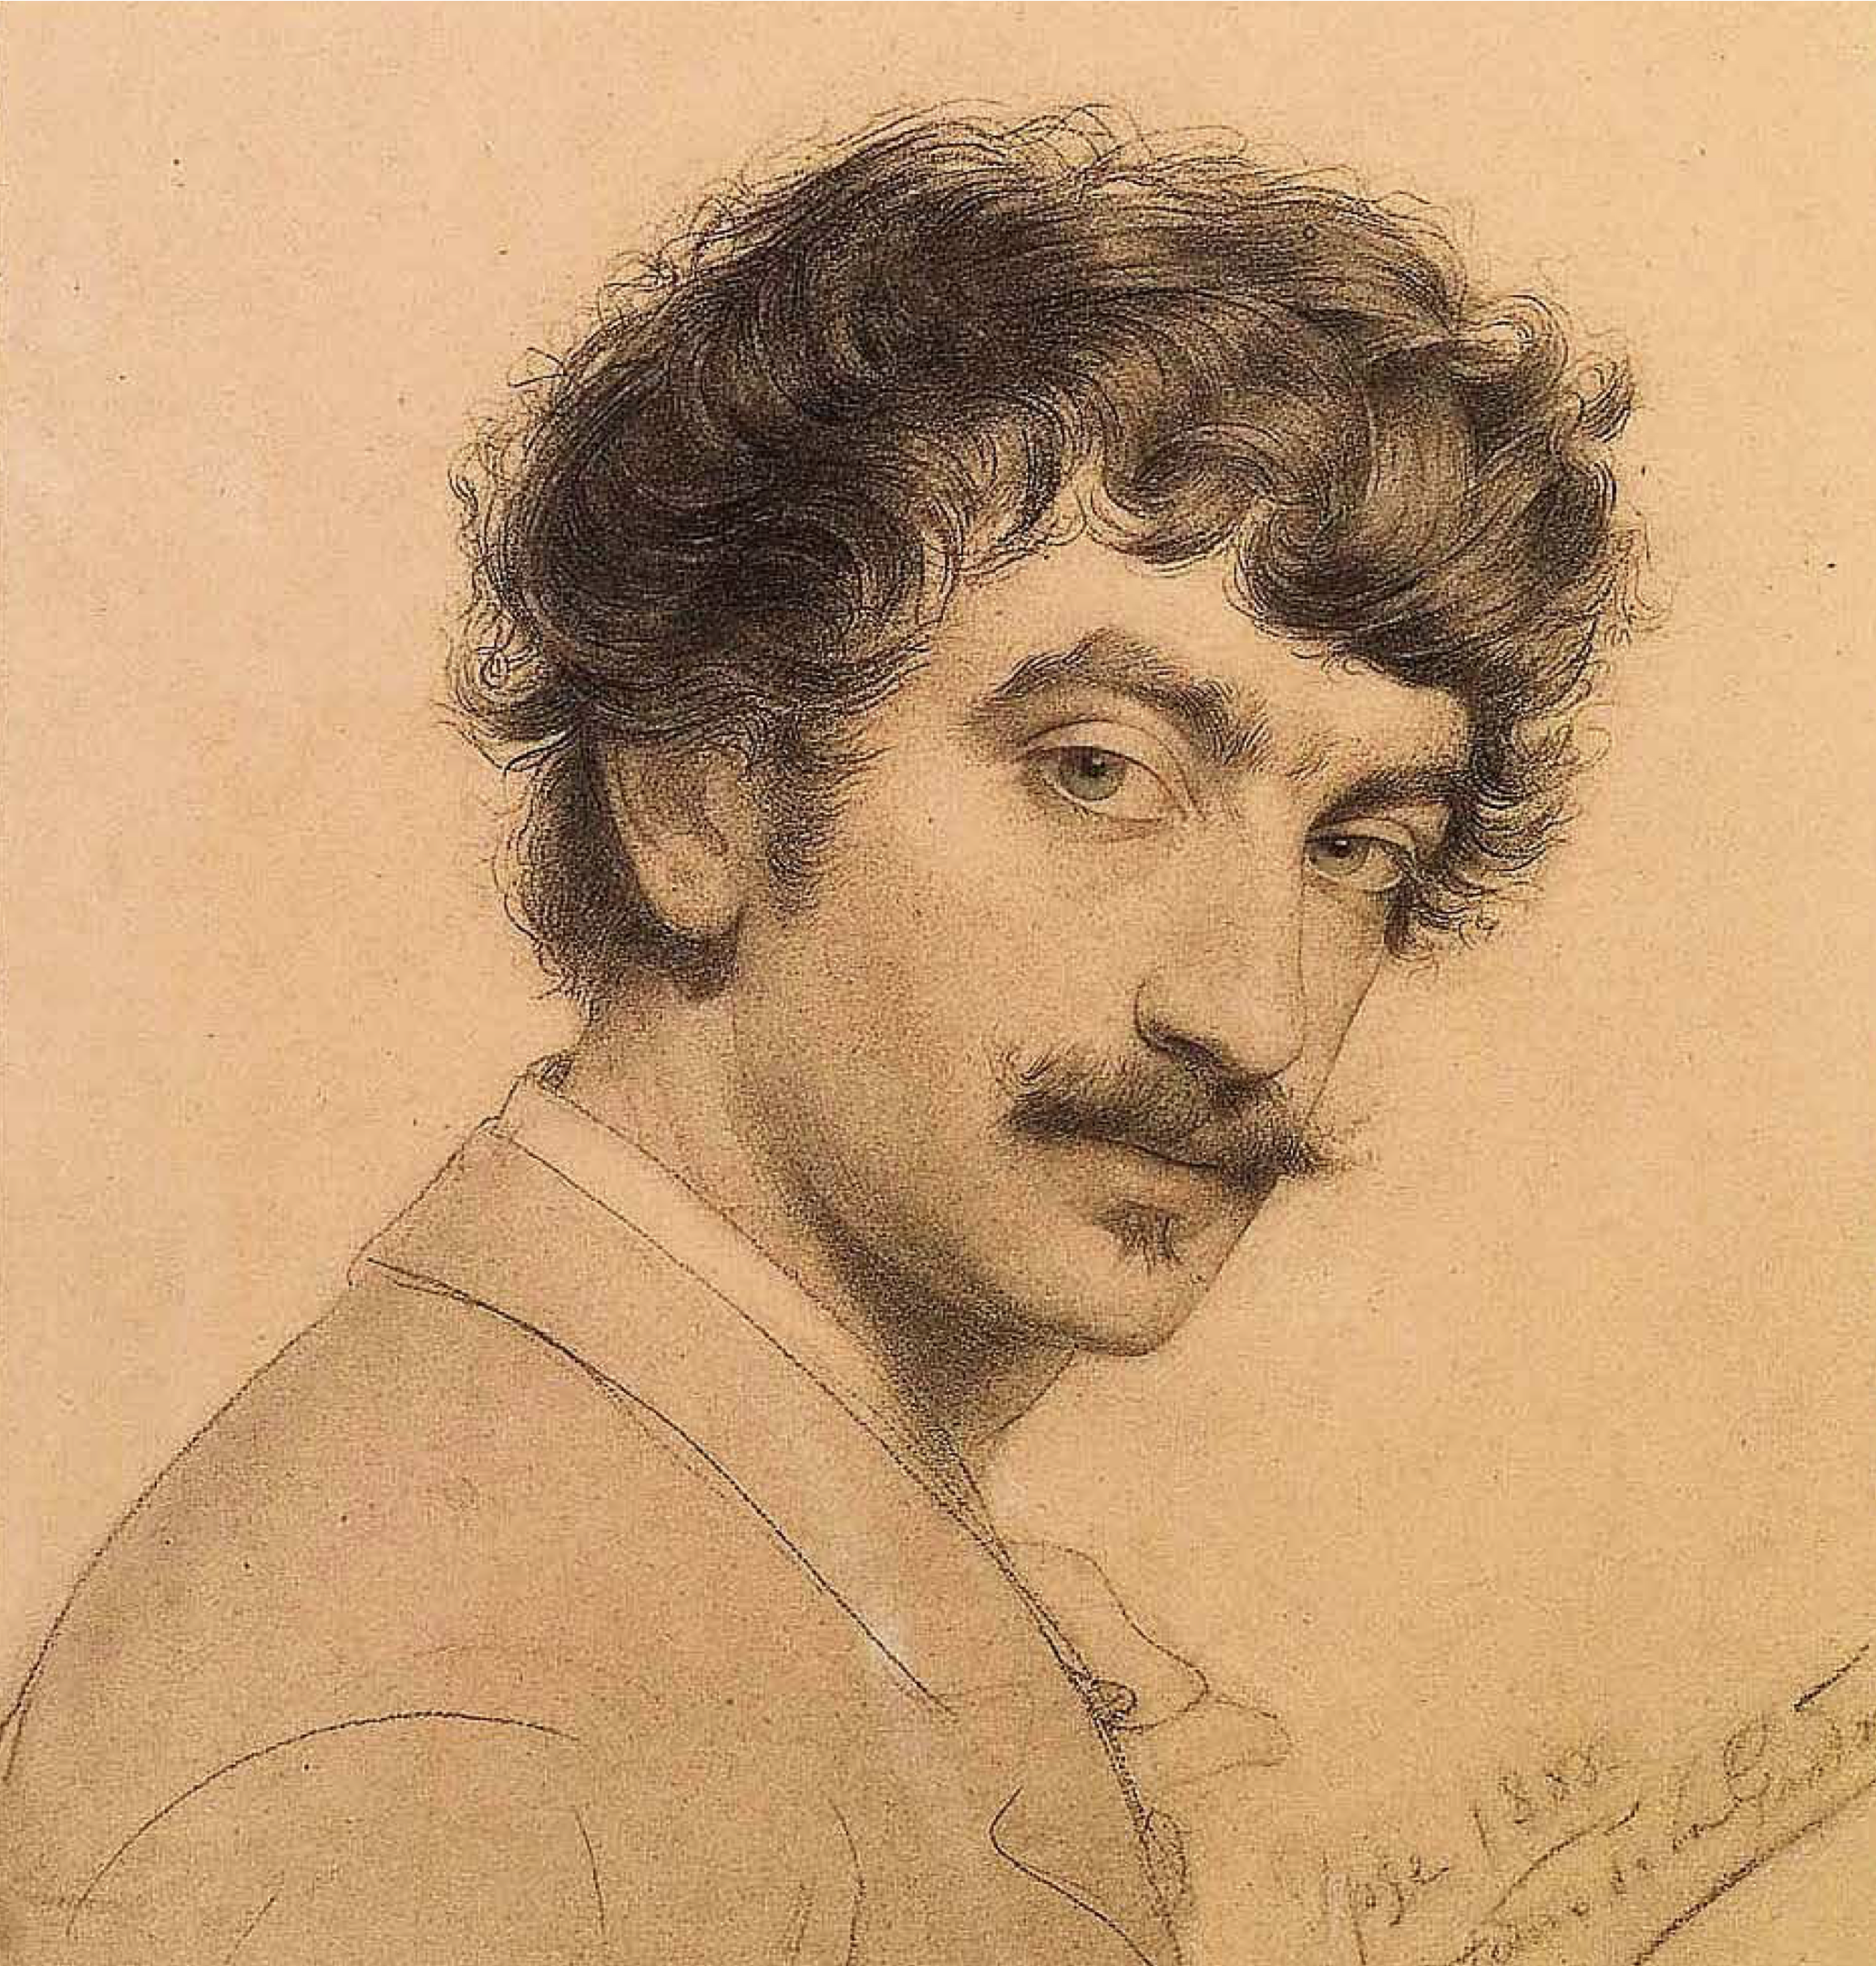 Antonio de La Gandara - Autoportrait 1888, Mine de plomb sur papier Collection Van de Velde © Archives de l'expert